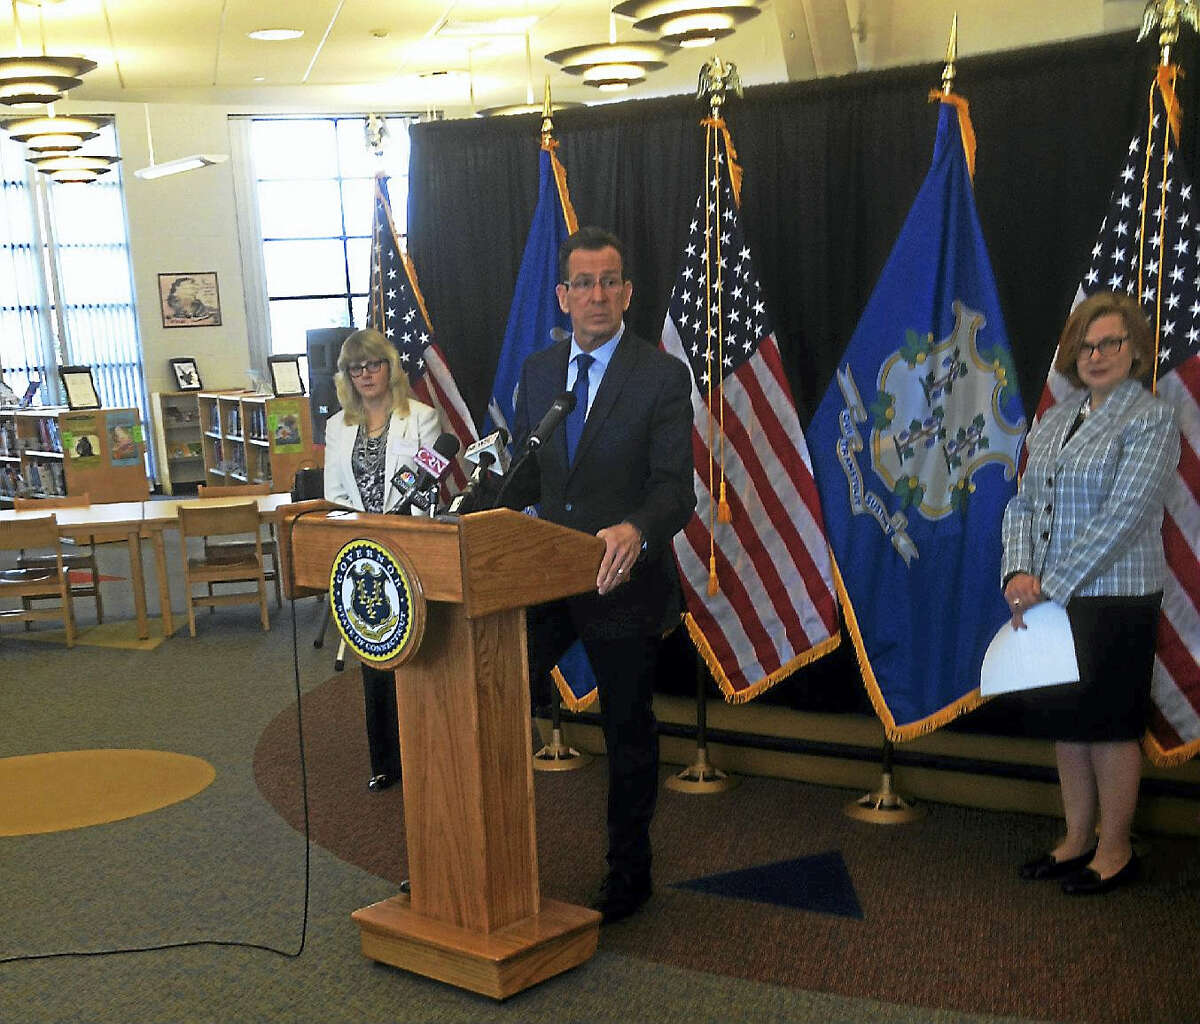 Gov. Dannel P. Malloy speaks to the press Thursday morning at Cromwell's Woodside Intermediate School about the decision to alter a portion of the Smarter Balanced Assessments for grades three to eight after analysis conducted by the school district. Malloy is flanked by Superintendent of Schools Paula Talty, left, and state Education Commissioner Dianna Wentzell.